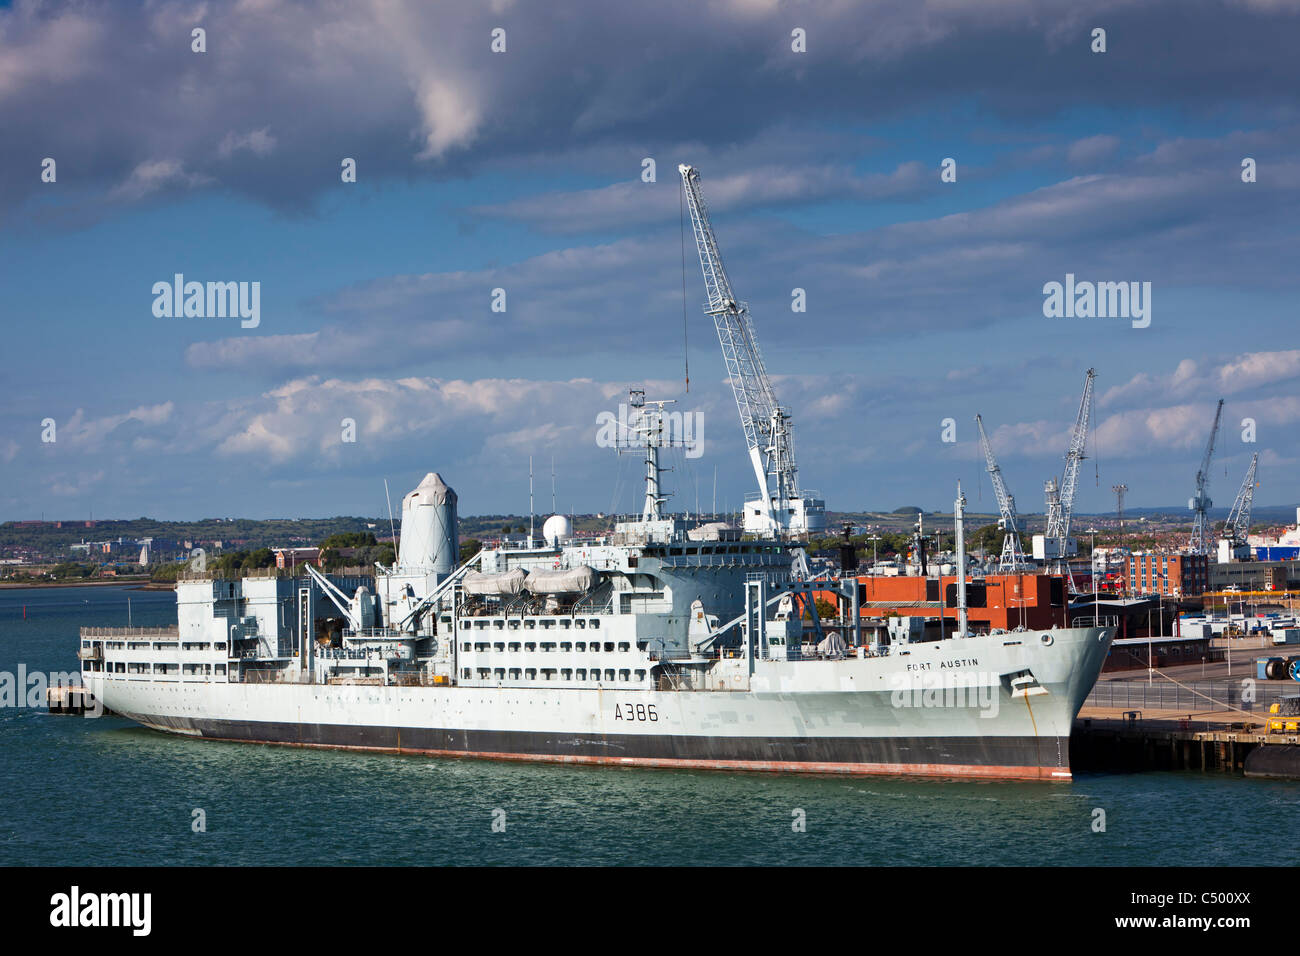 RFA Fort Austin A386 moored in Portsmouth Harbour England UK - Stock Image